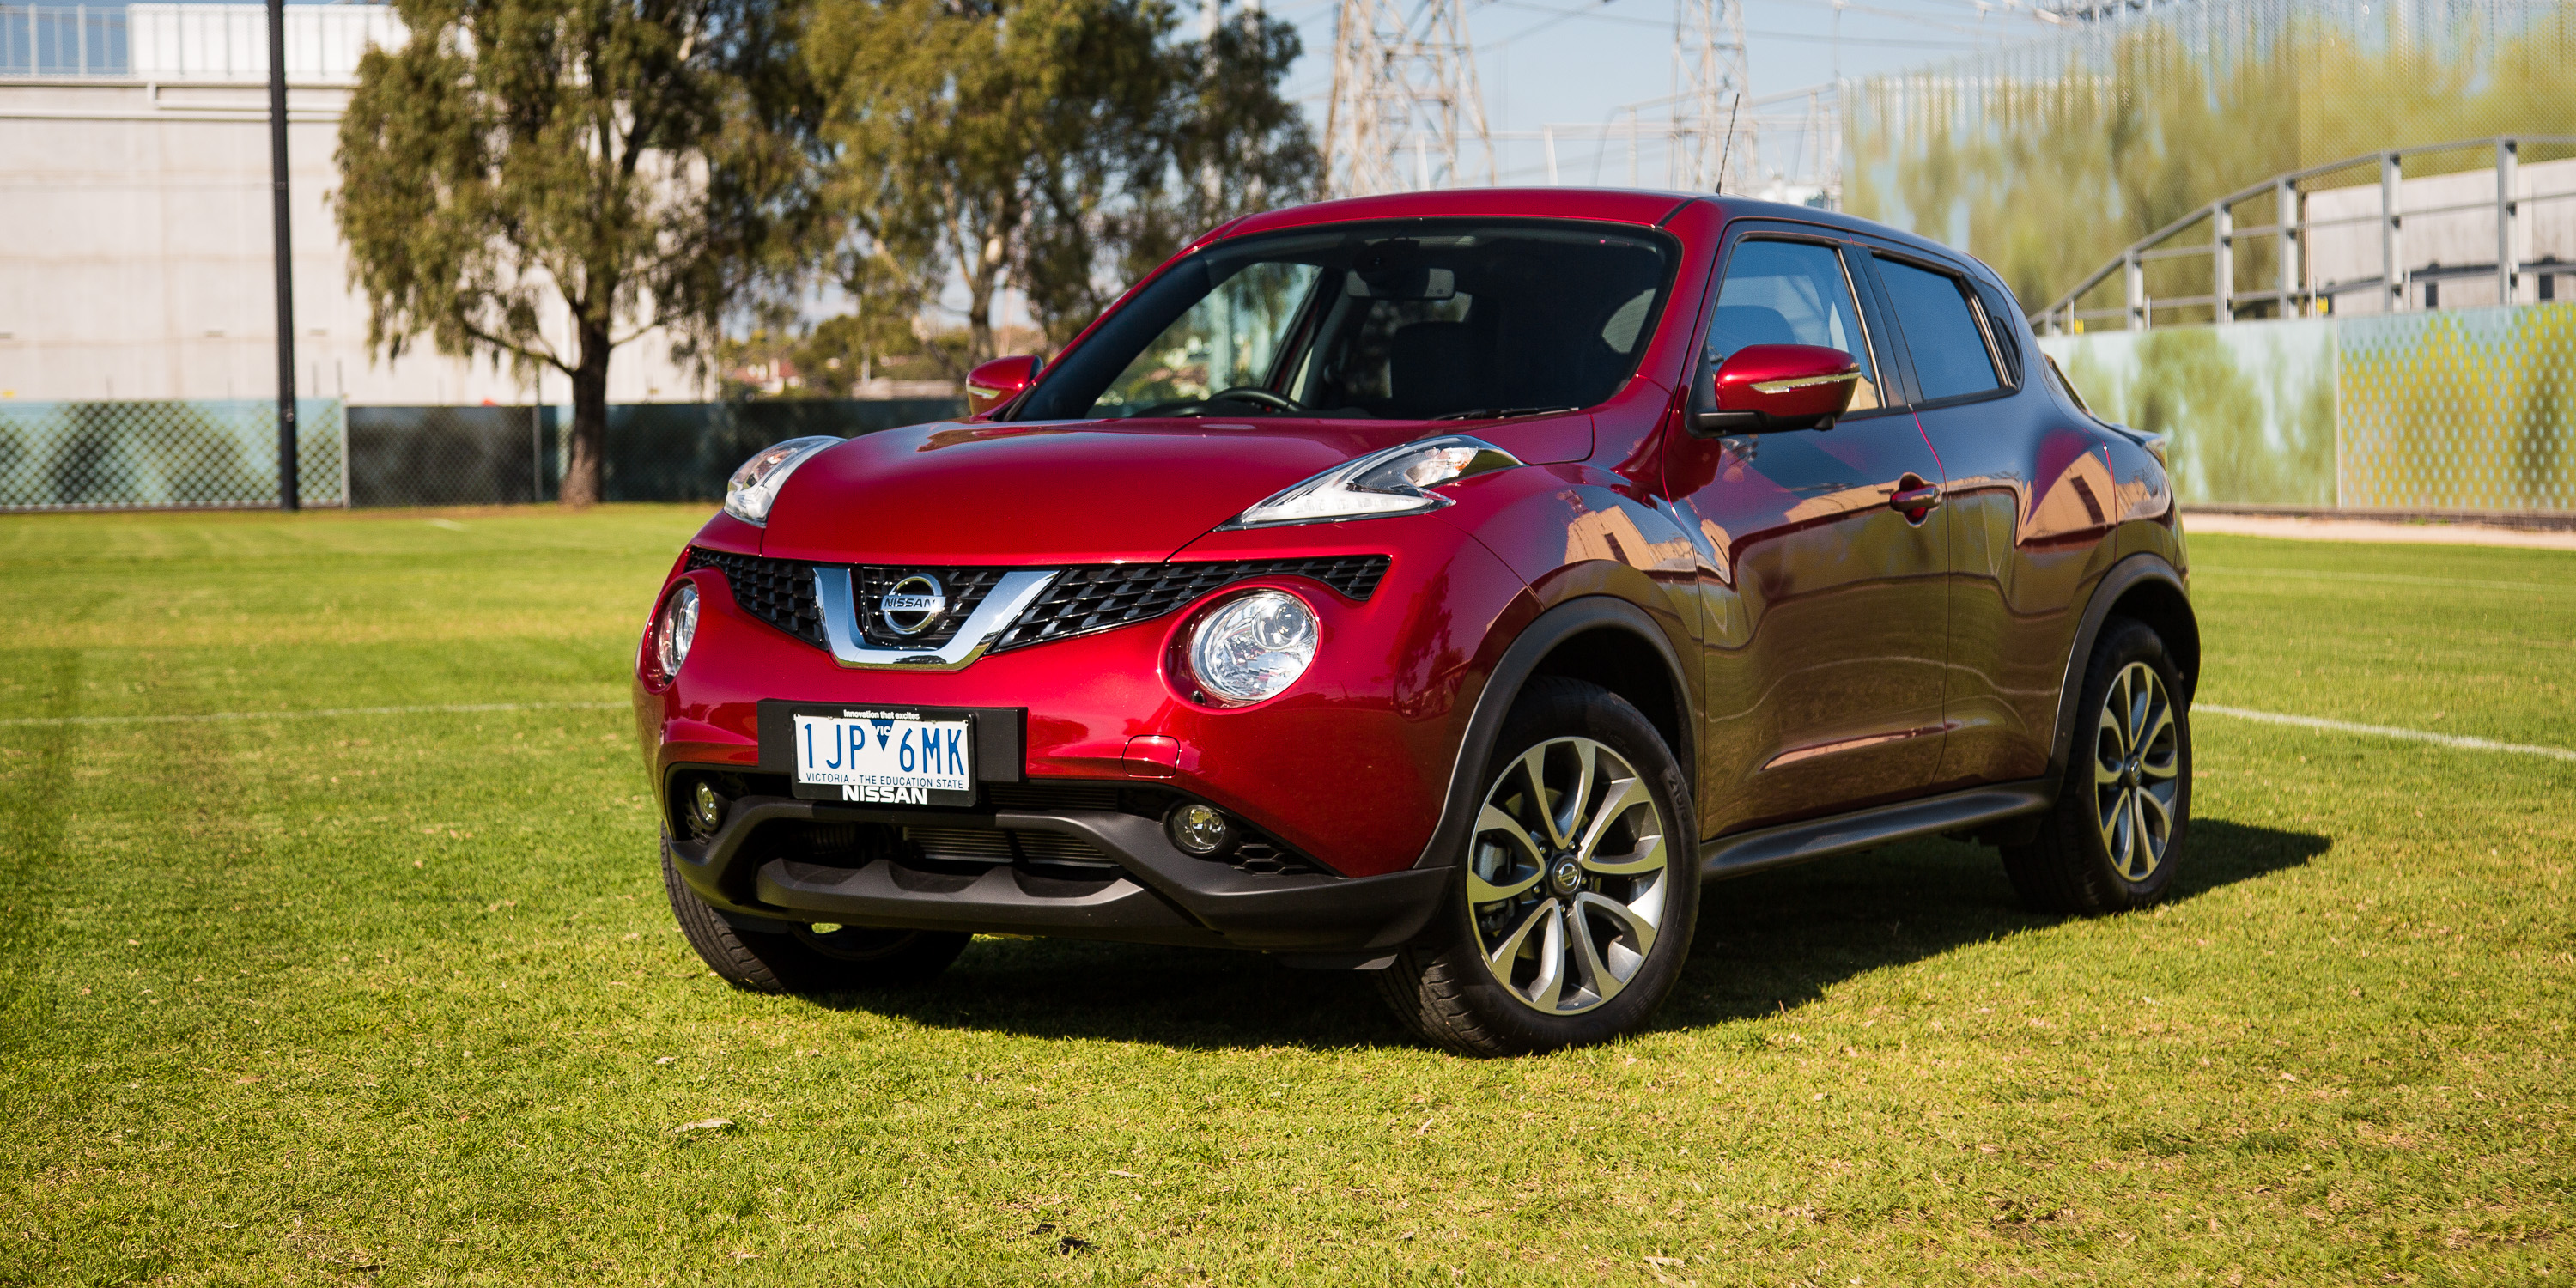 Awd Sports Cars >> 2017 Nissan Juke Ti-S AWD review | CarAdvice